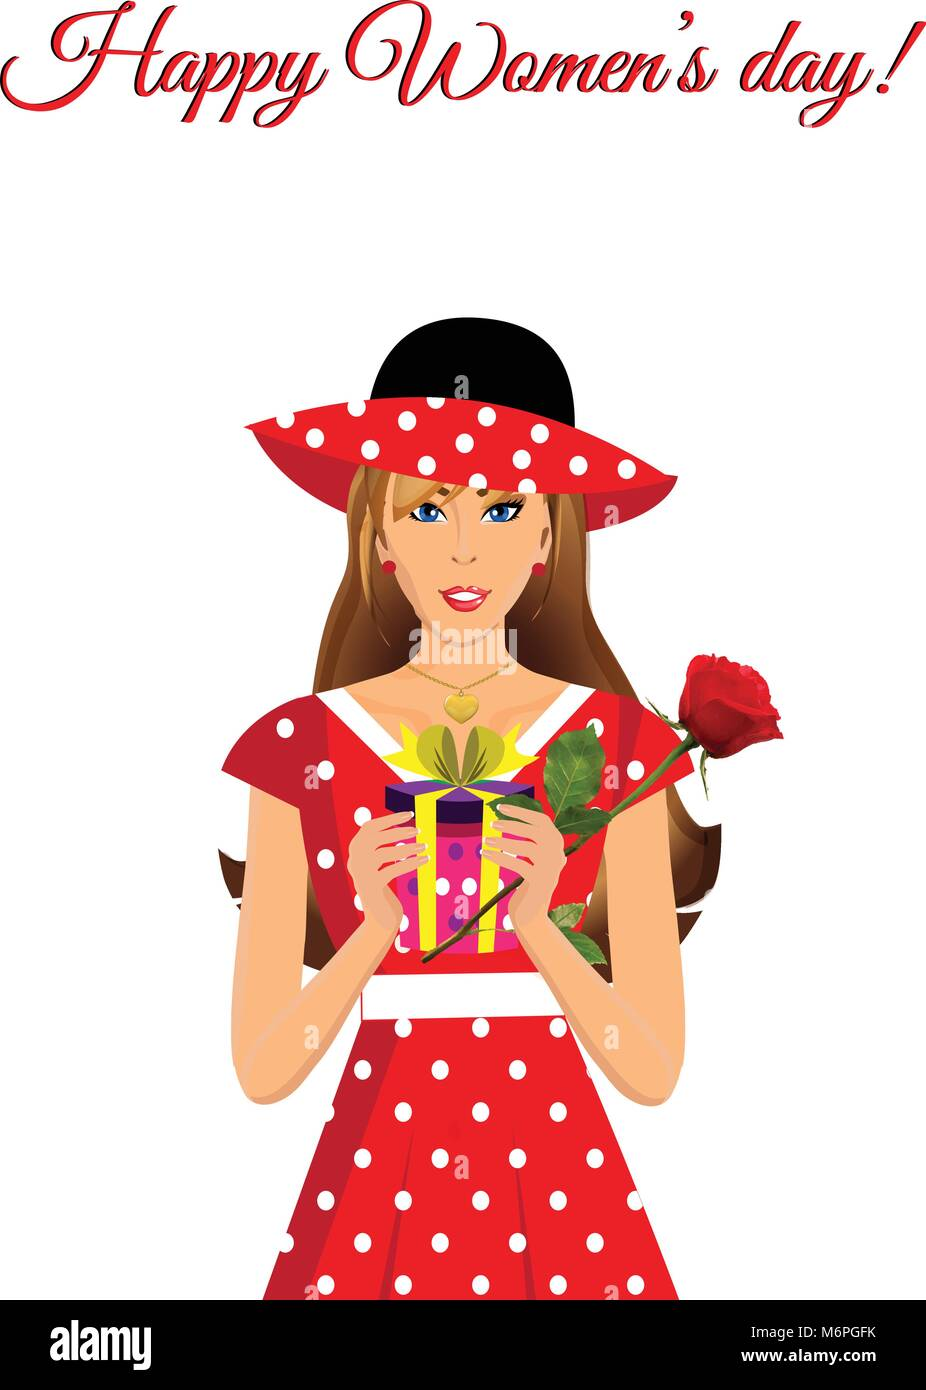 Happy women s day greeting card with cute adorable girl in red dress with polka  dots print and hat holding gift and beautiful rose in hands isolated o 0d08a18f8